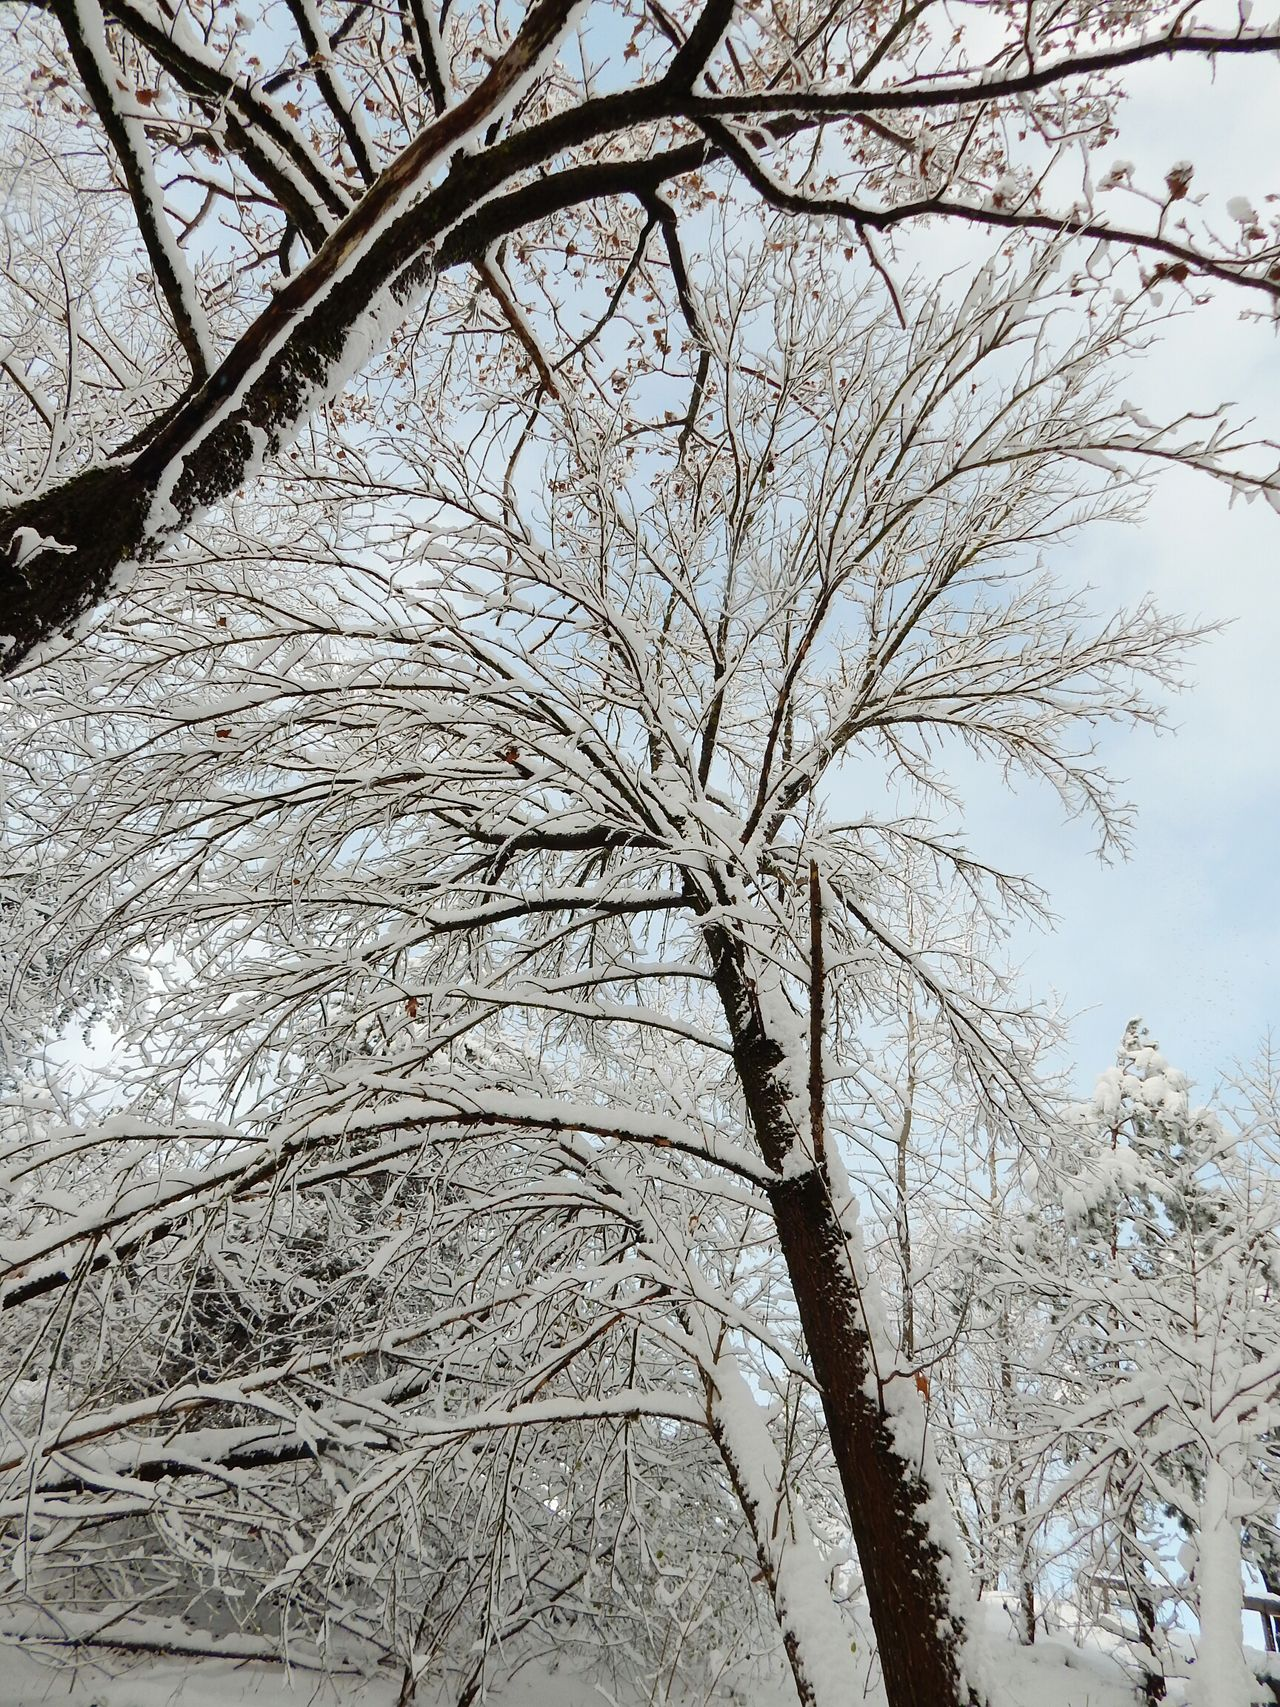 Tree Nature Growth Sky Branch Low Angle View No People Outdoors Close-up Beauty In Nature Day Forest Latvia Riga Nature Beauty In Nature Snow Tree Cold Temperature Non-urban Scene Textured